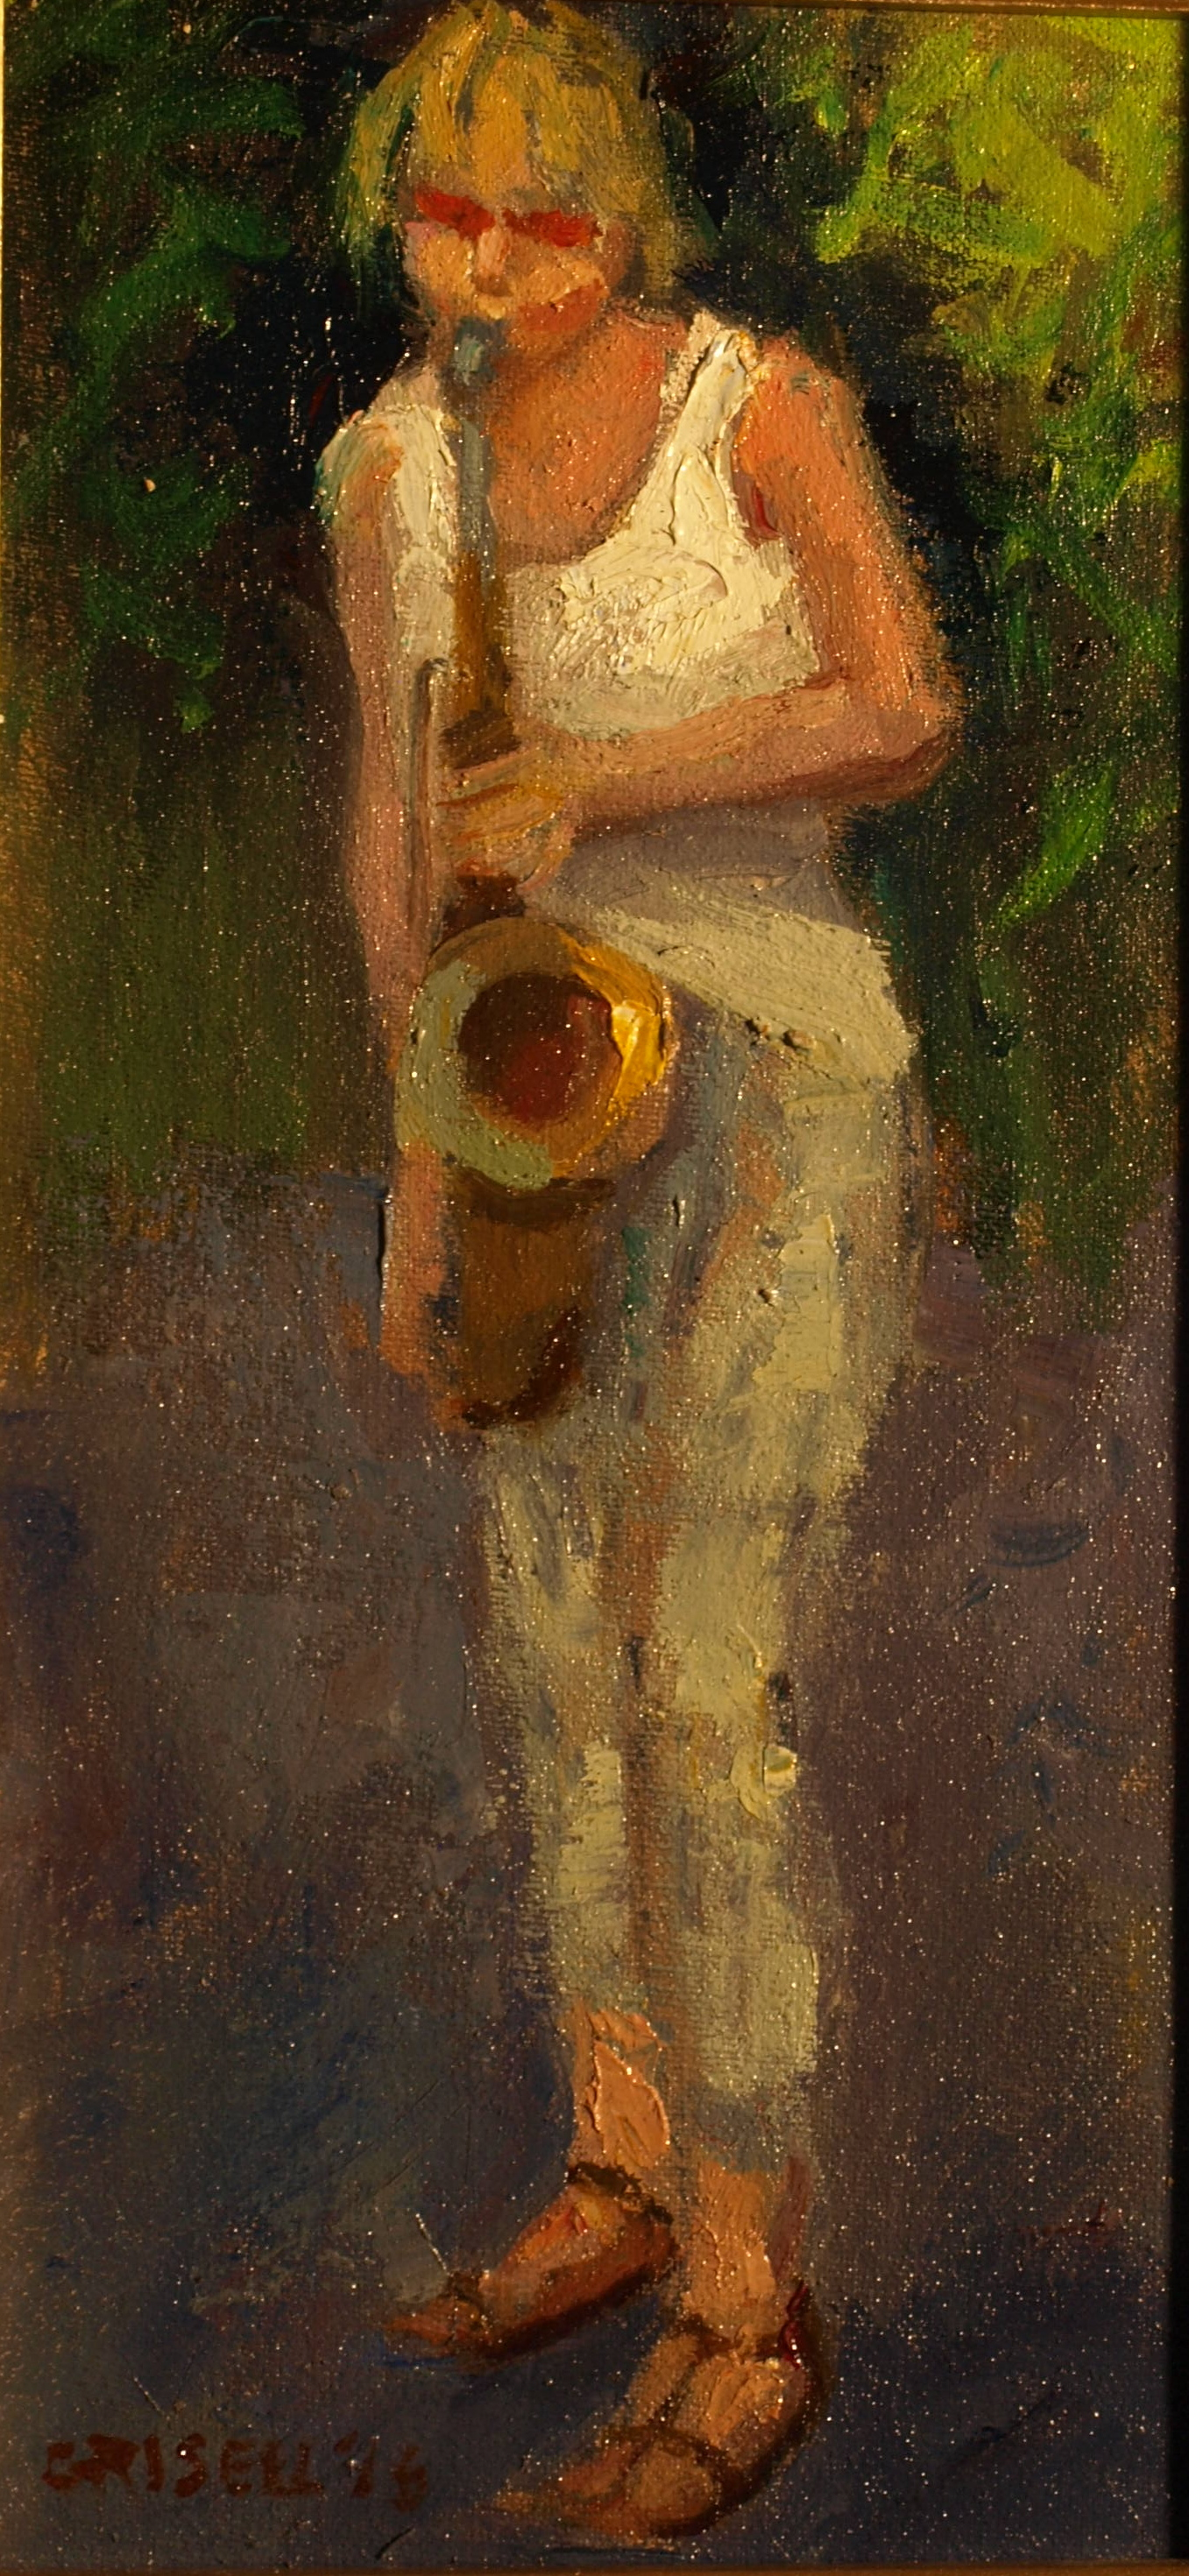 Saxophone Player, Oil on Canvas on Panel, 12 x 6 Inches, by Susan Grisell, $150